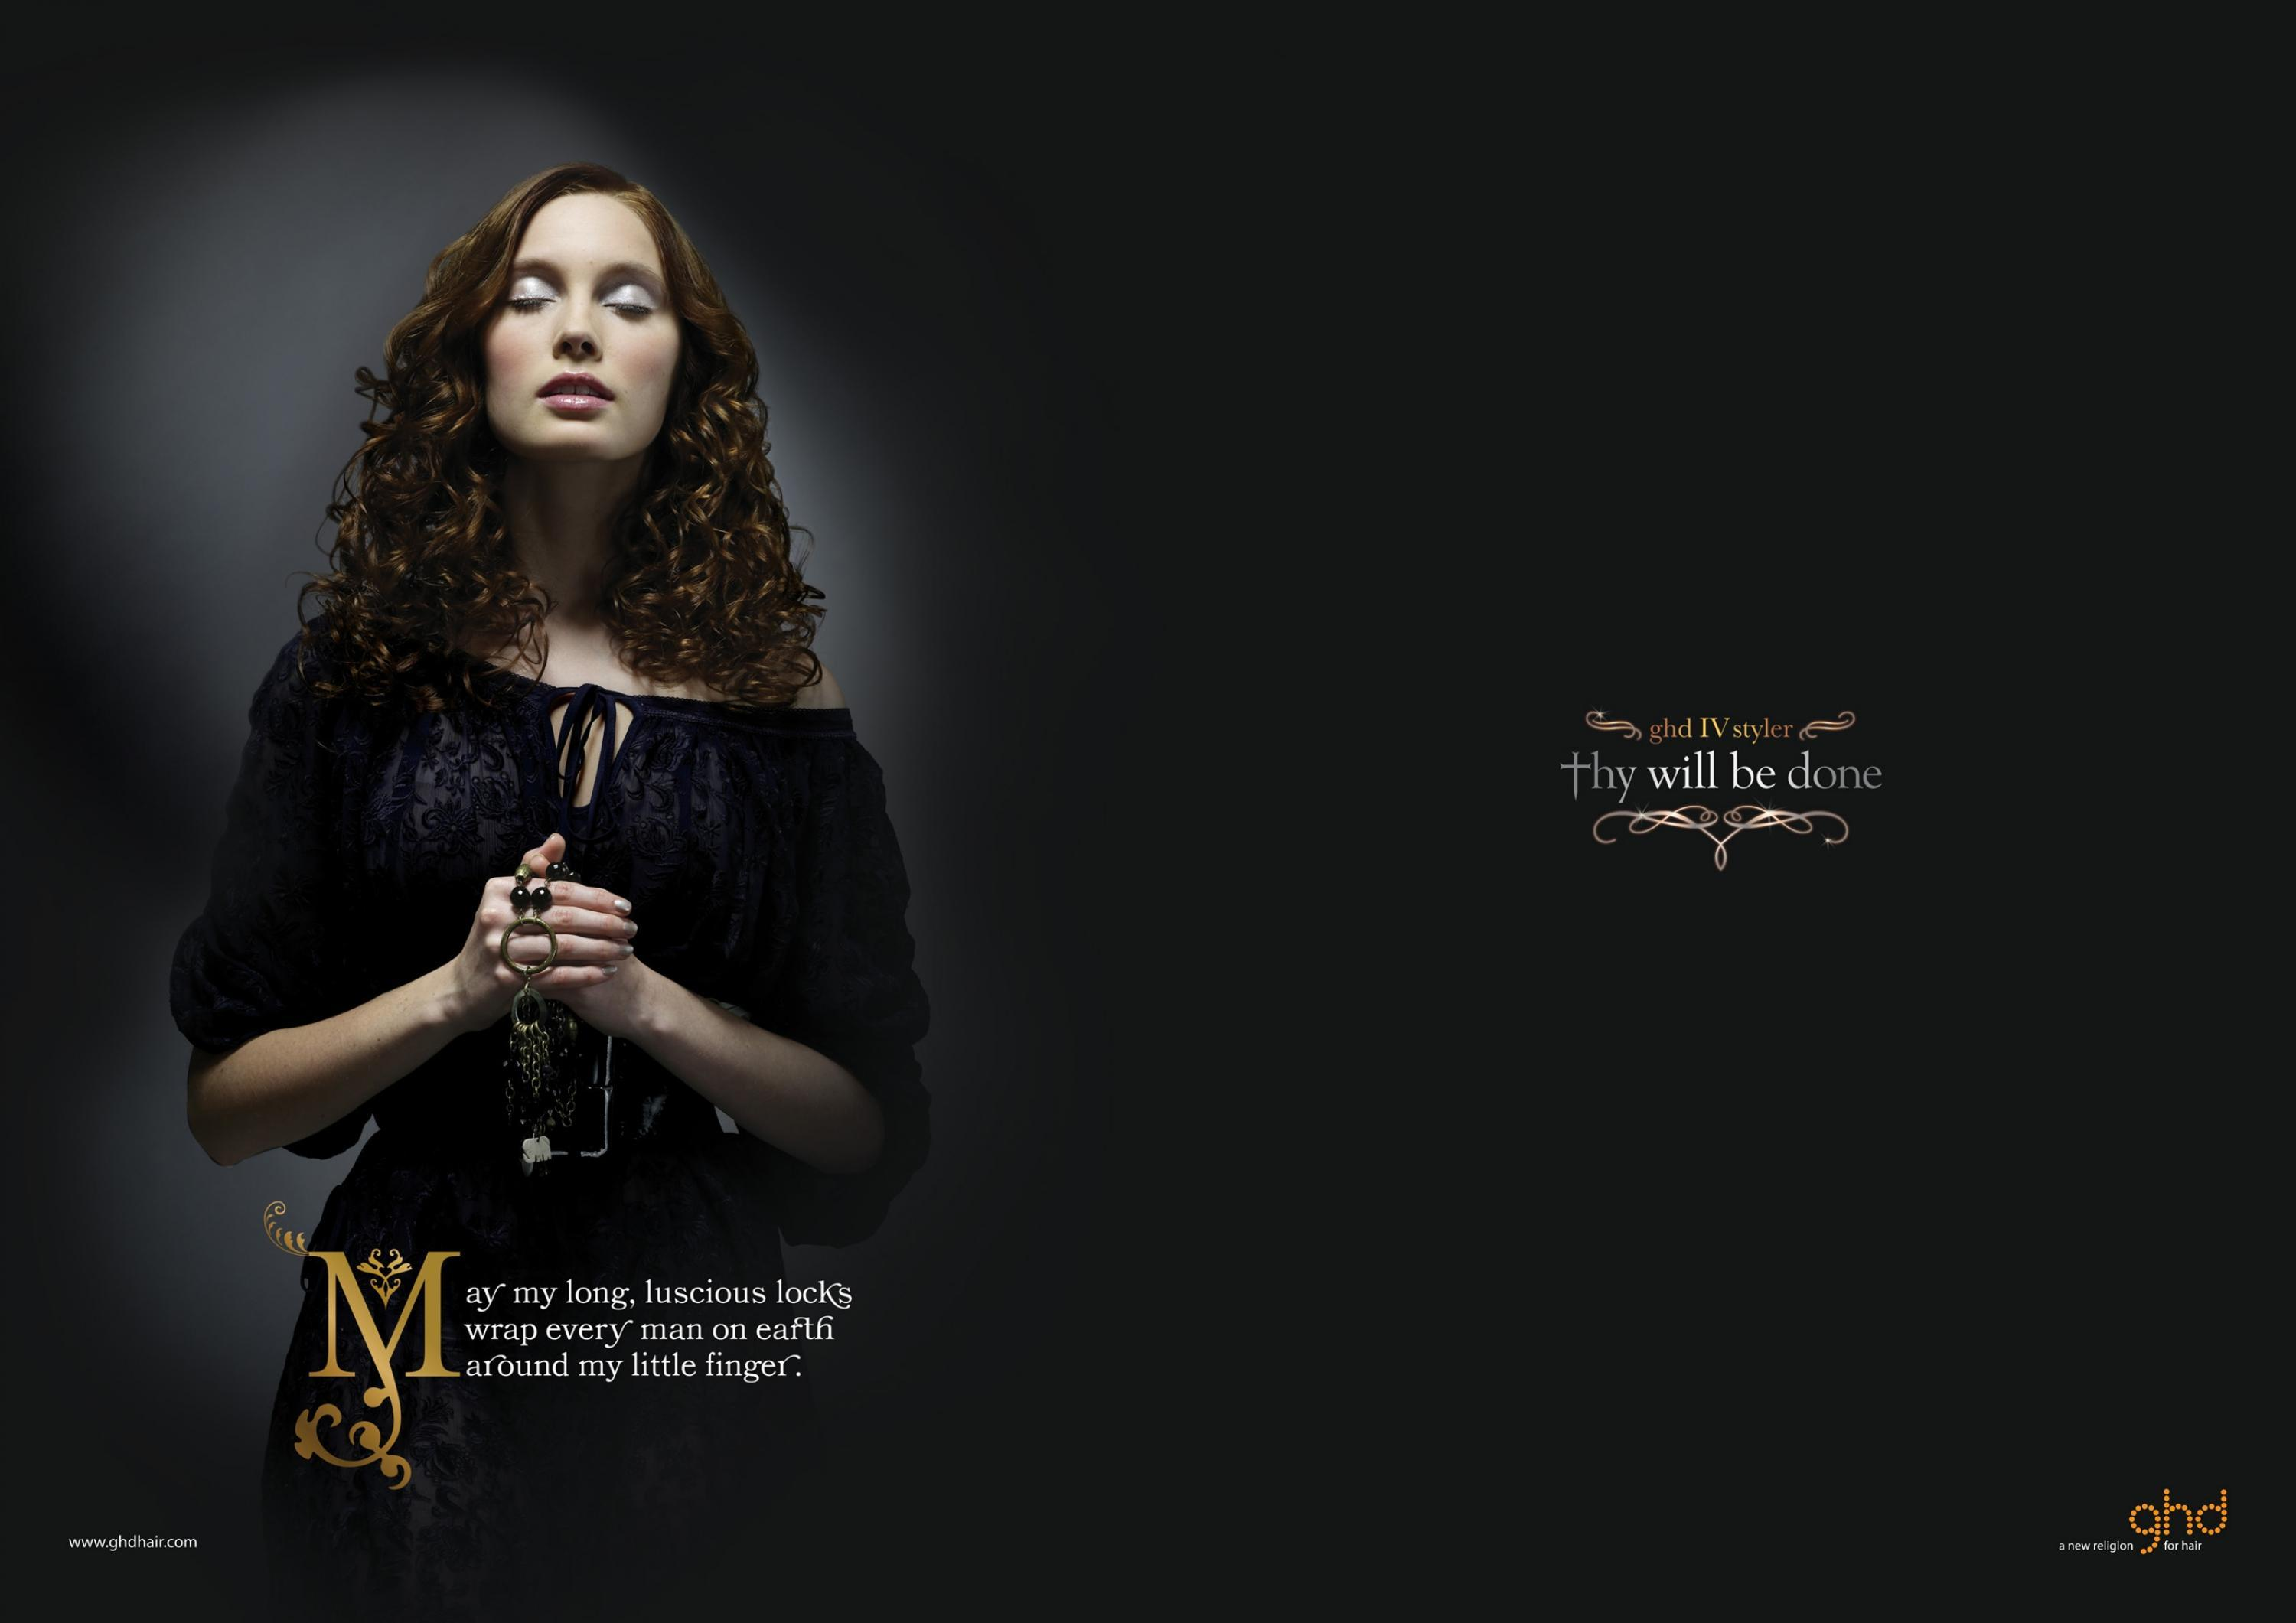 Ghd adverts banned Ghd adverts banned new photo